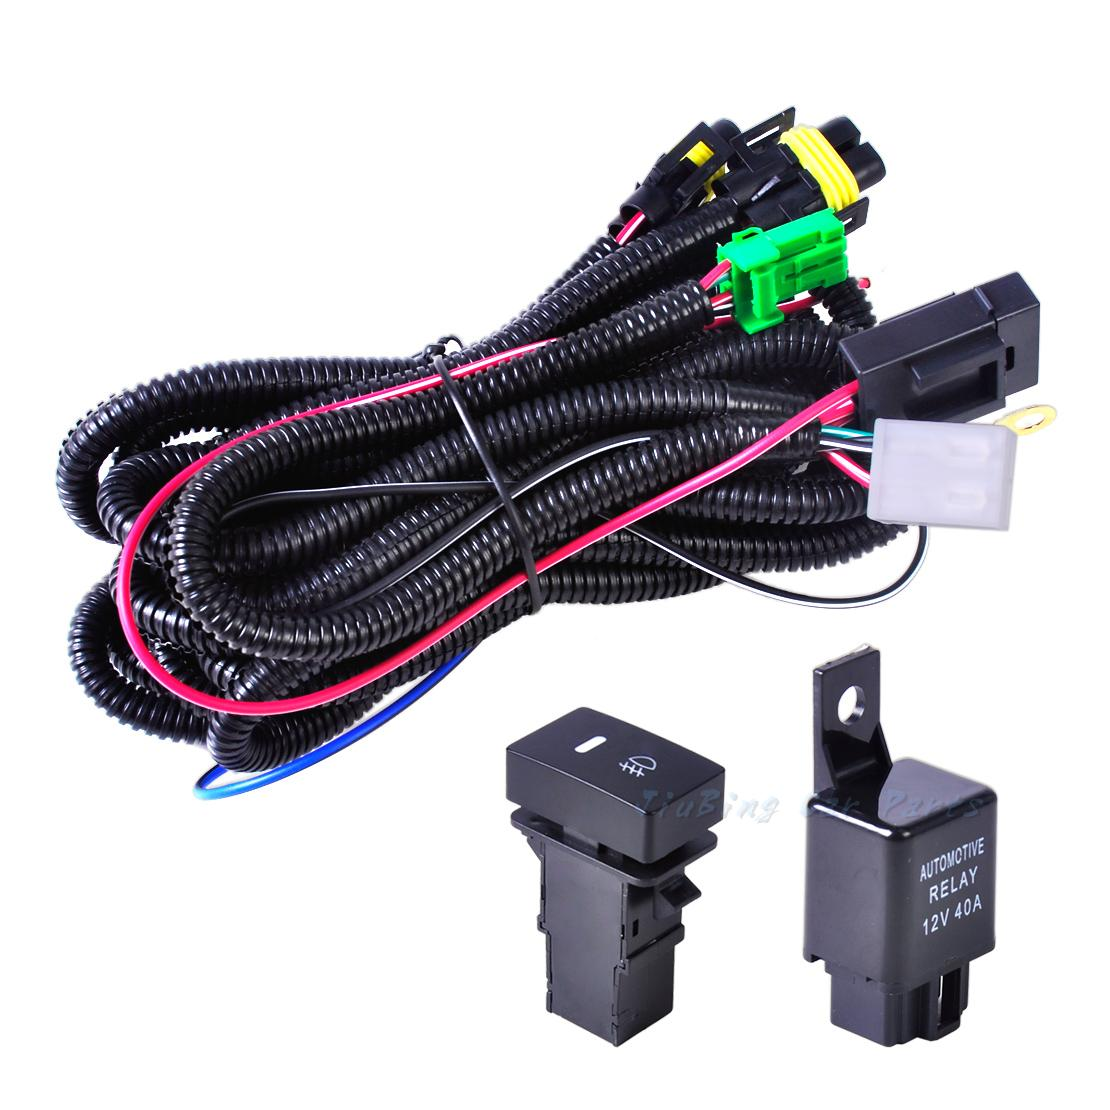 Wiring Harness Socketswitch H11 Fog Light Lamps For Ford Focus Sockets Switch Lamp Acura Nissan